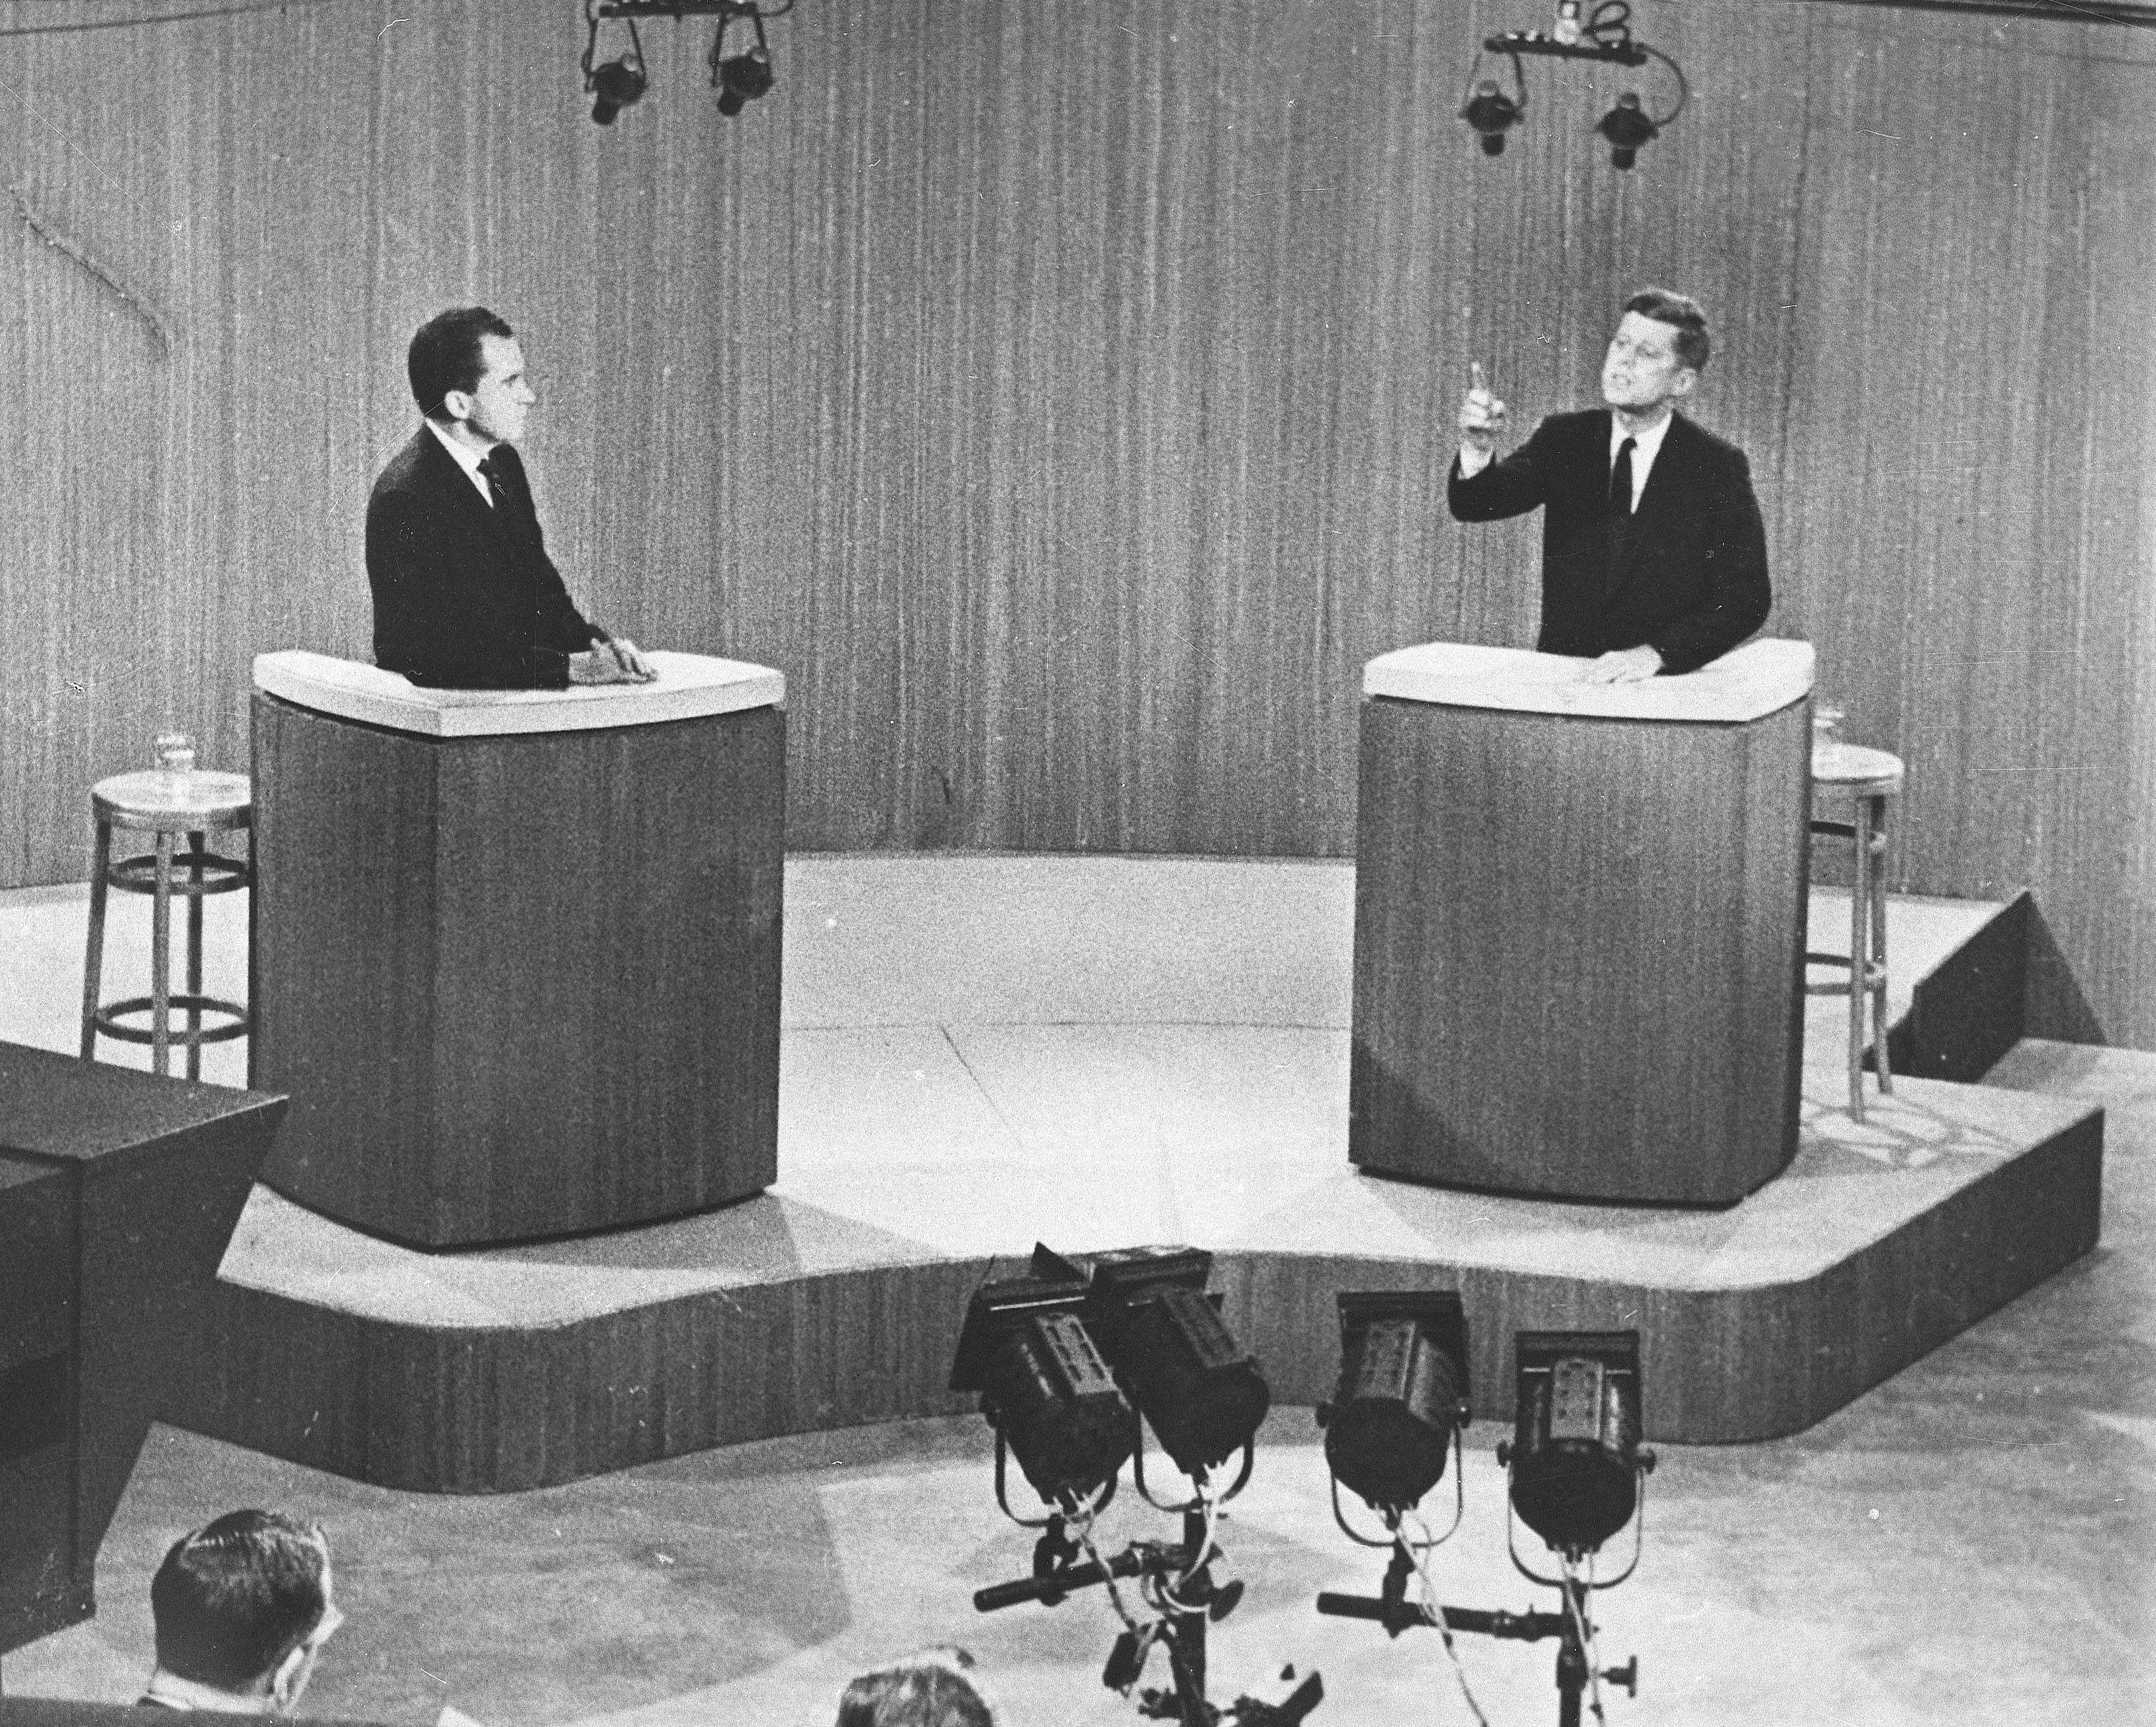 Republican Vice President Richard M. Nixon, listens as Sen. John F. Kennedy, the Democratic presidential nominee, makes a point during a live broadcast from a New York television studio of their fourth presidential debate on Oct. 21, 1960. The candidates' performance in this debate is often credited with helping lift Kennedy to victory in the general election.